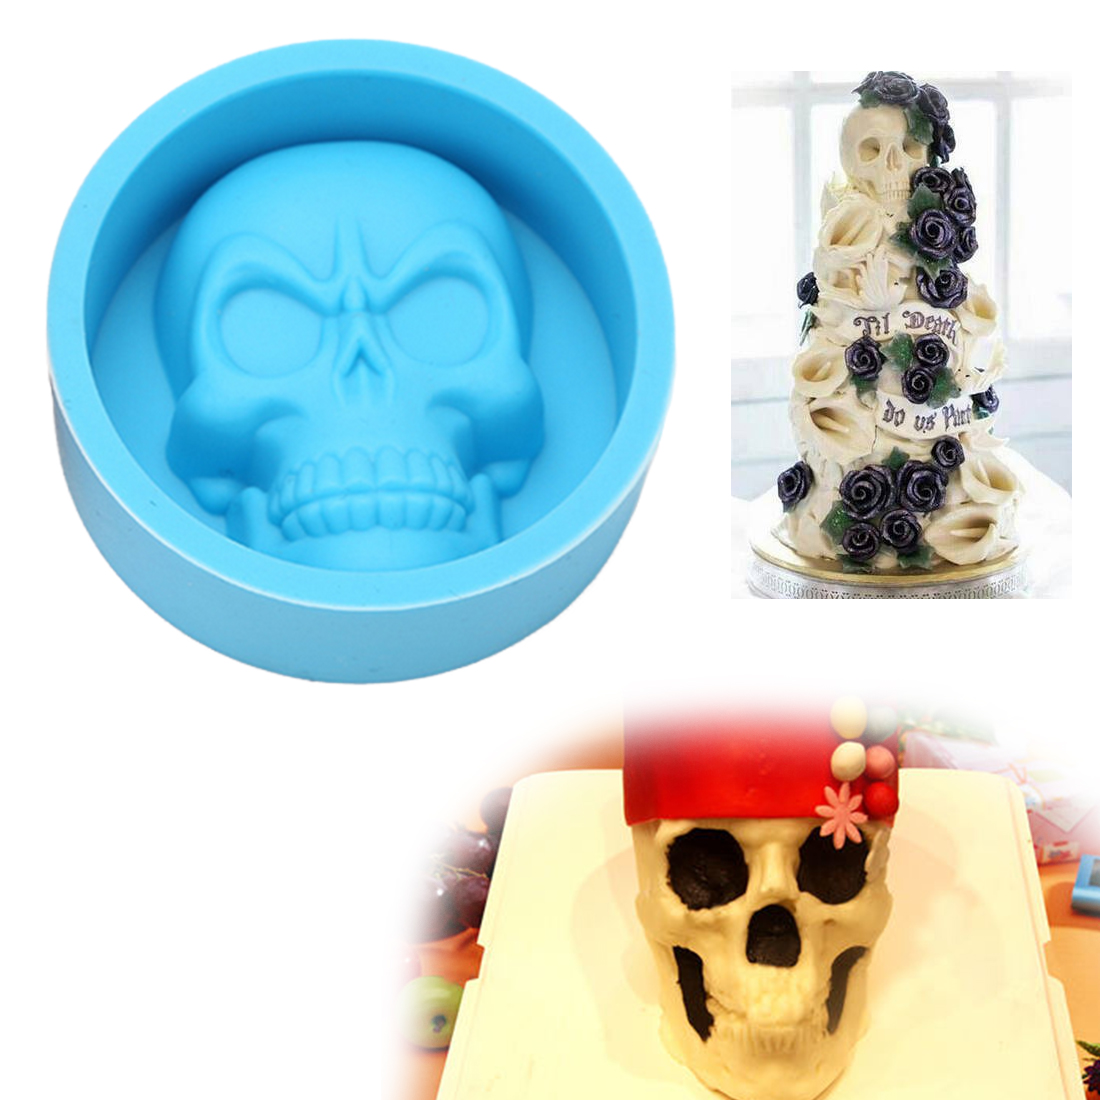 3D Skull Head Silicone Mold Home Party Fondant Cake Chocolate Sugar ...